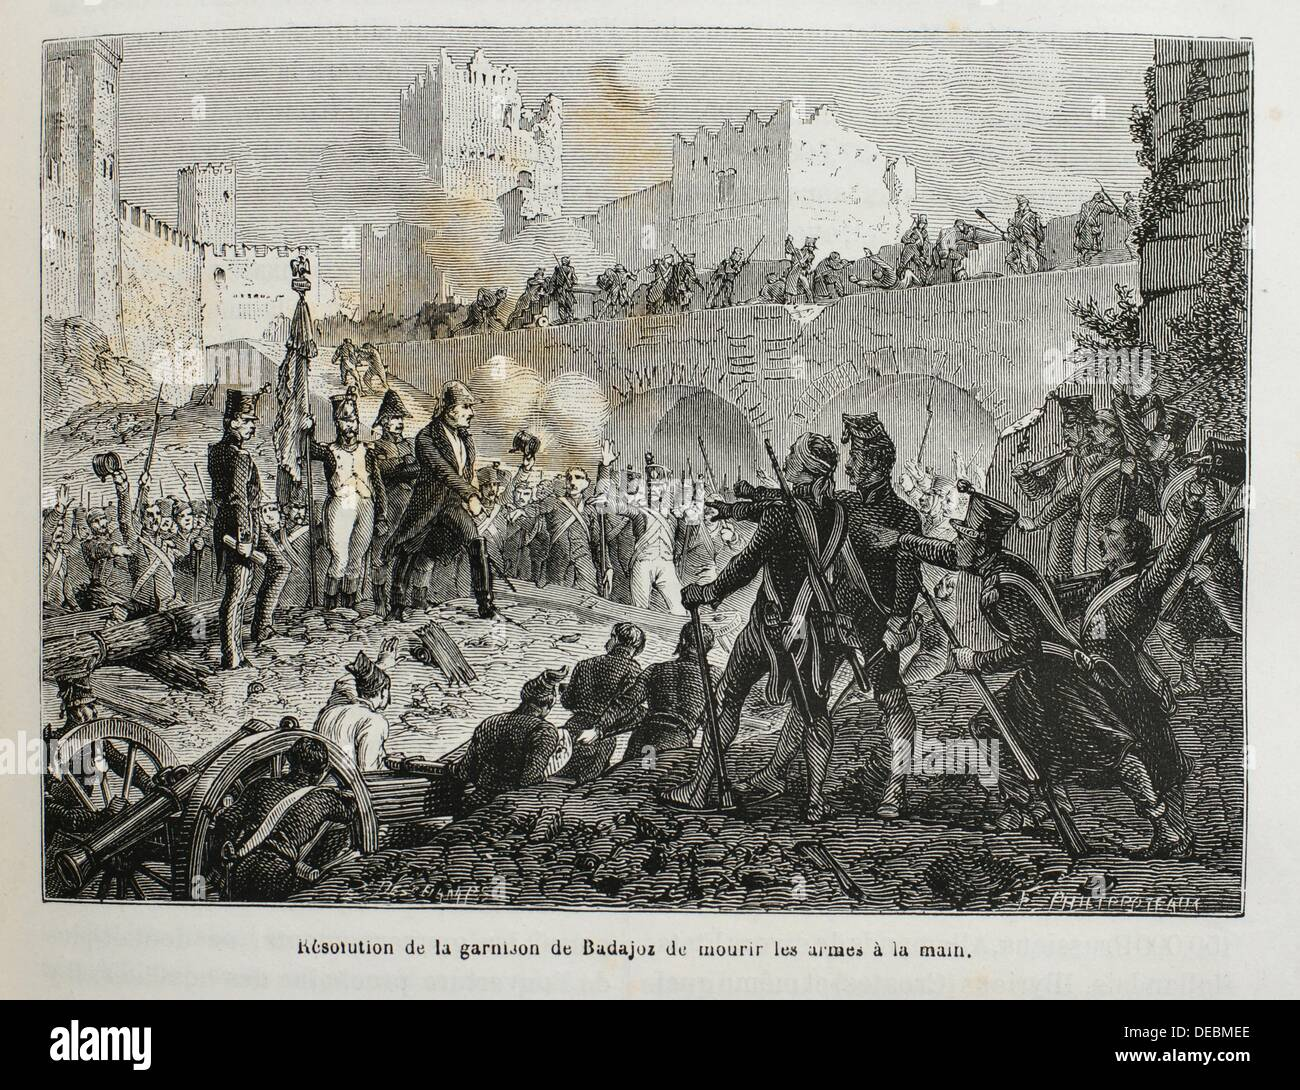 France, Spain-History-19th Century - resolution of the spanish army deciding not to surrender to the Napoleon troops, - Stock Image